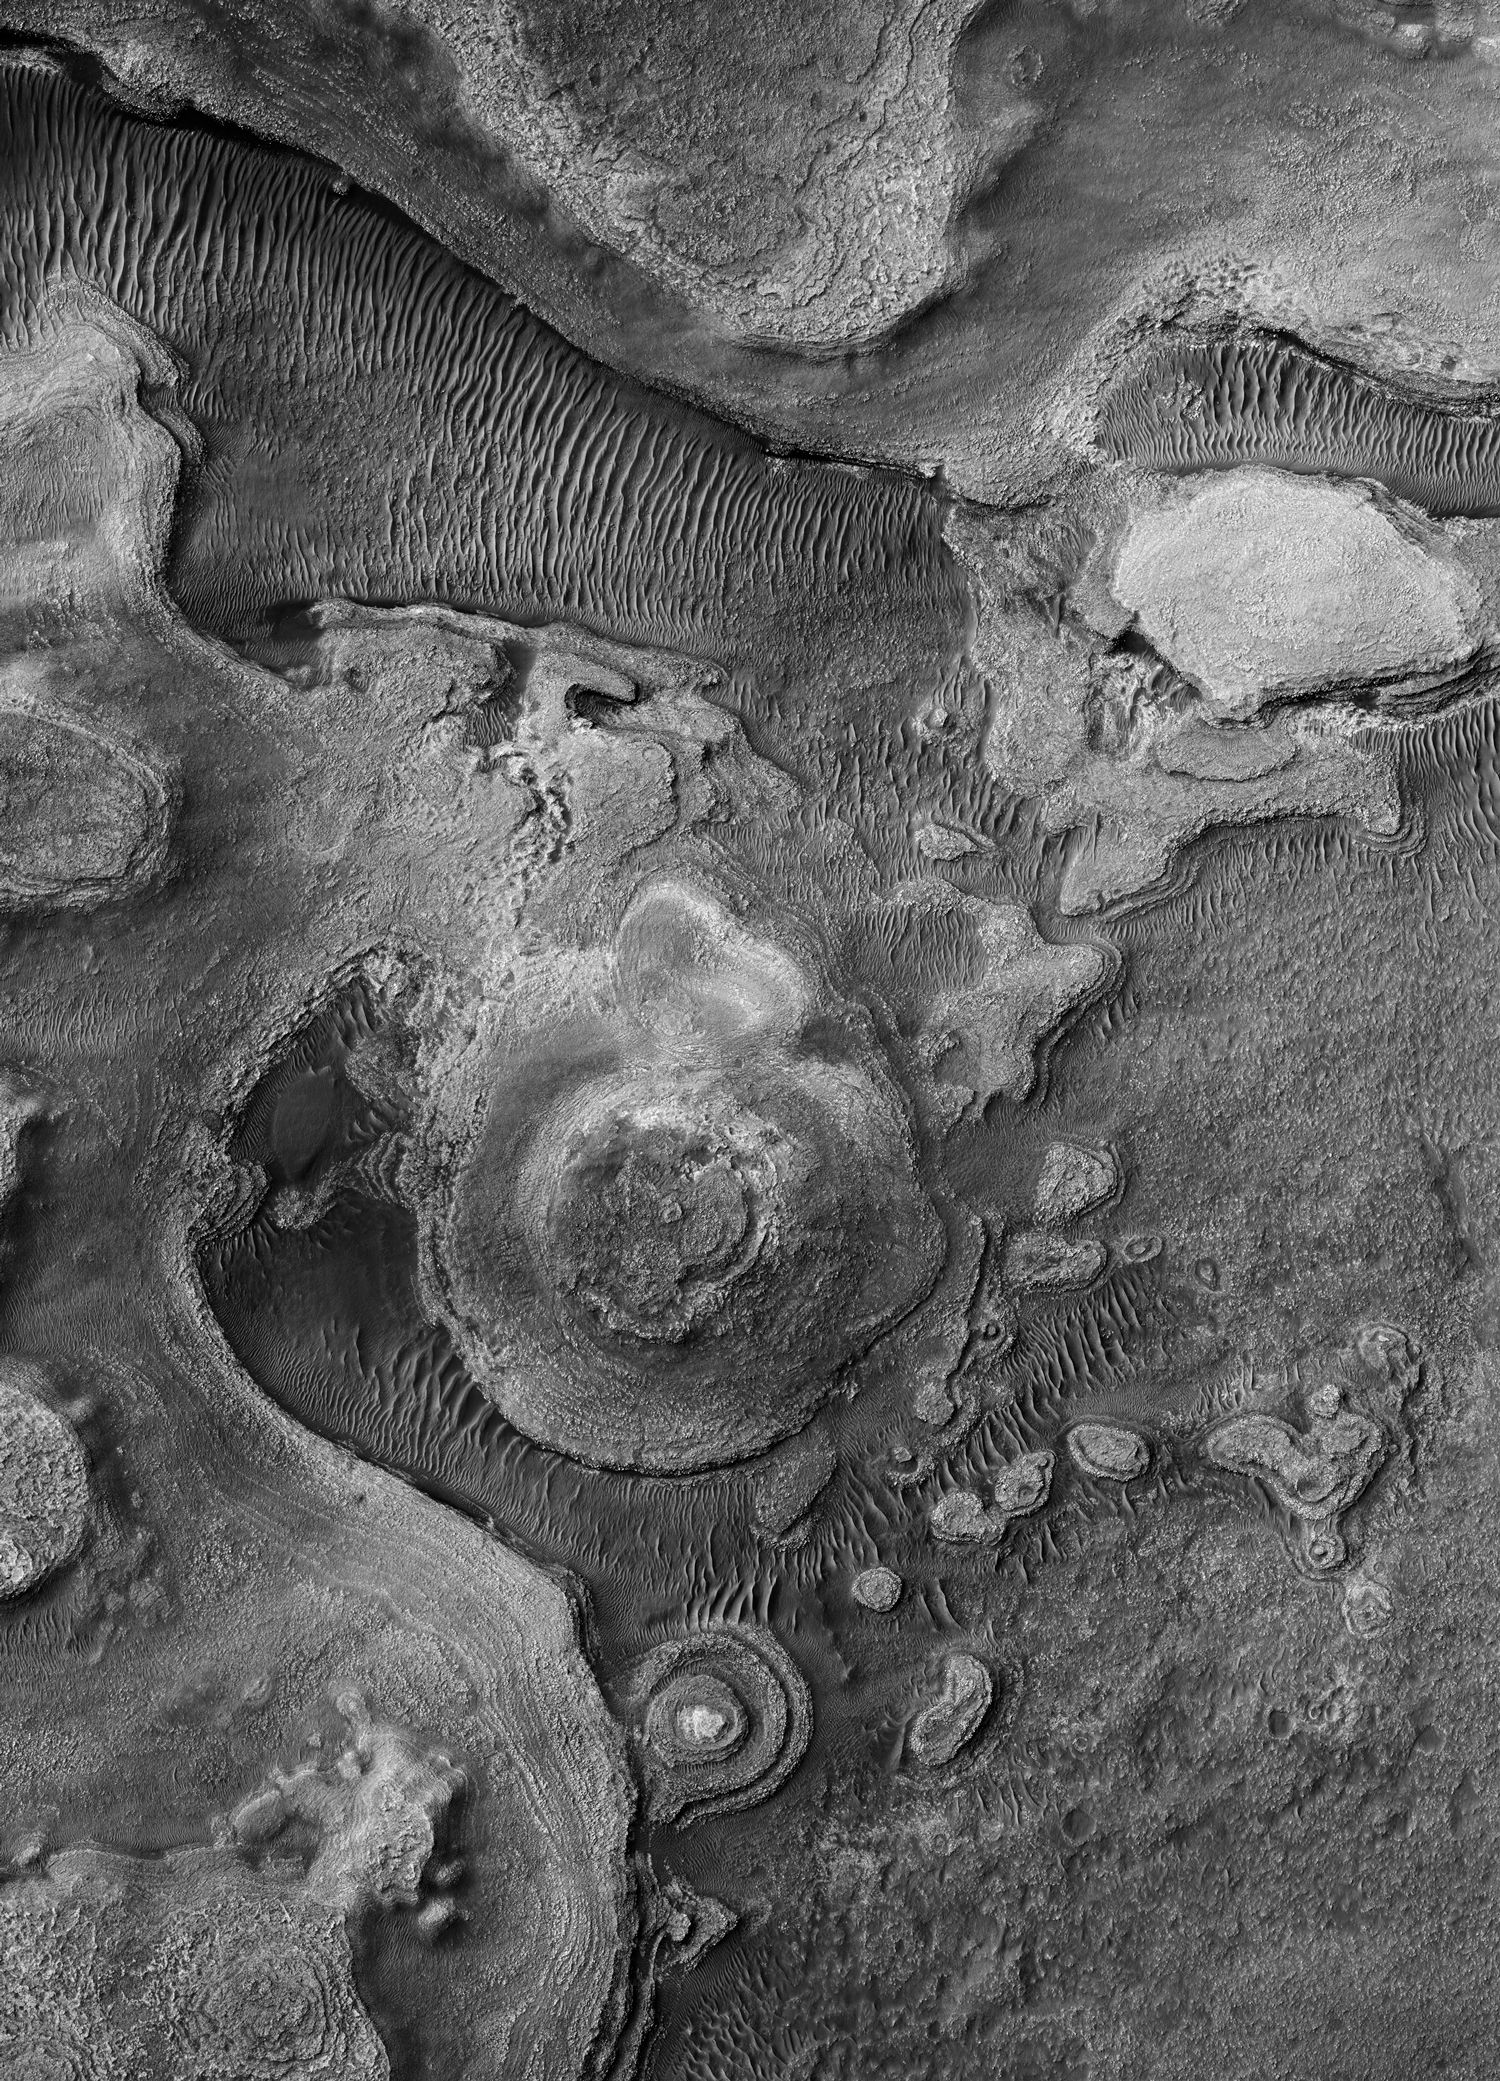 A Us Satellite Took These Beautiful Black And White Photographs Of Mars Black And White Photographs Black And White Photo